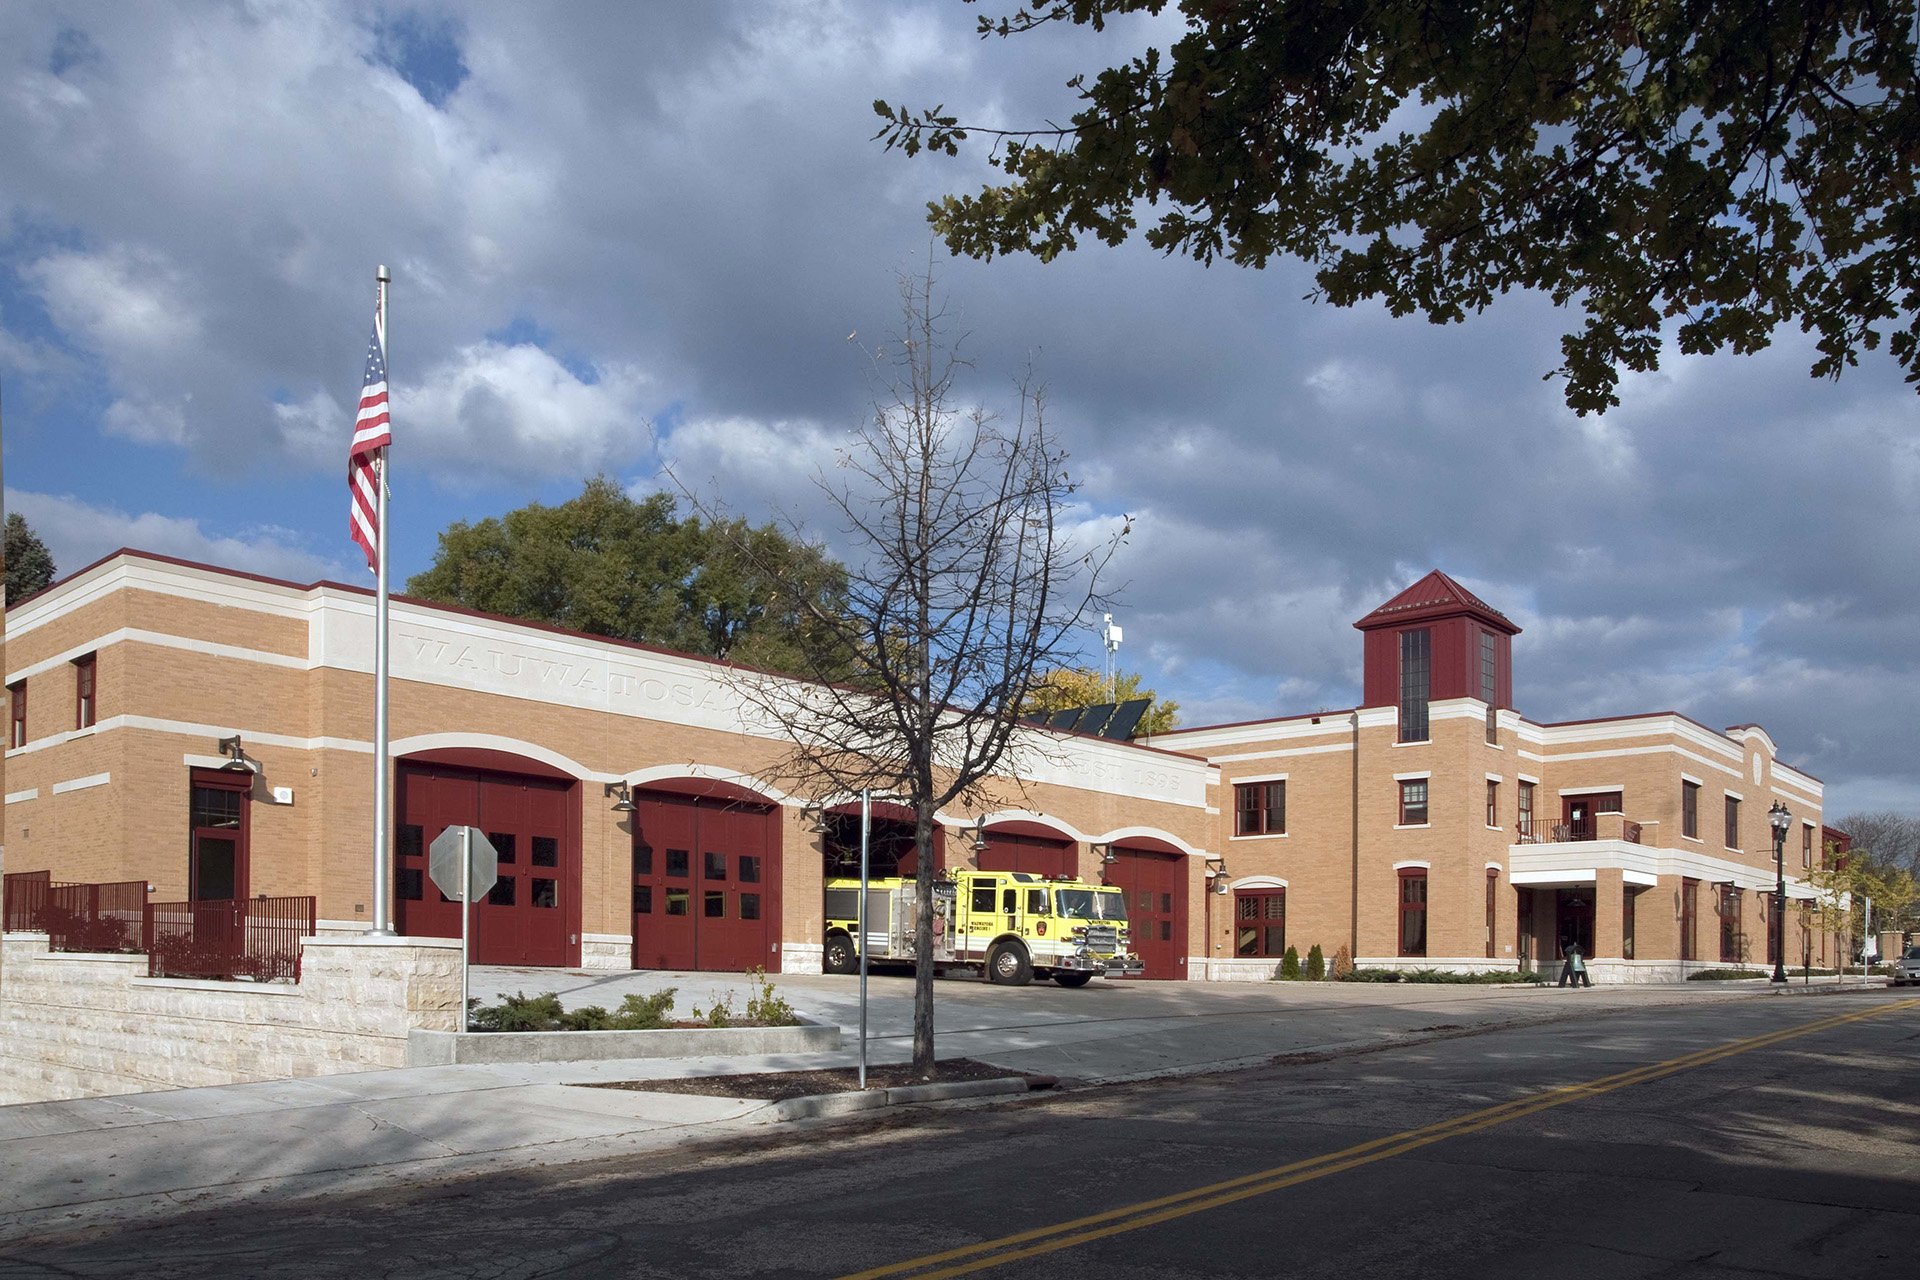 Wauwatosa Fire Department Headquarters